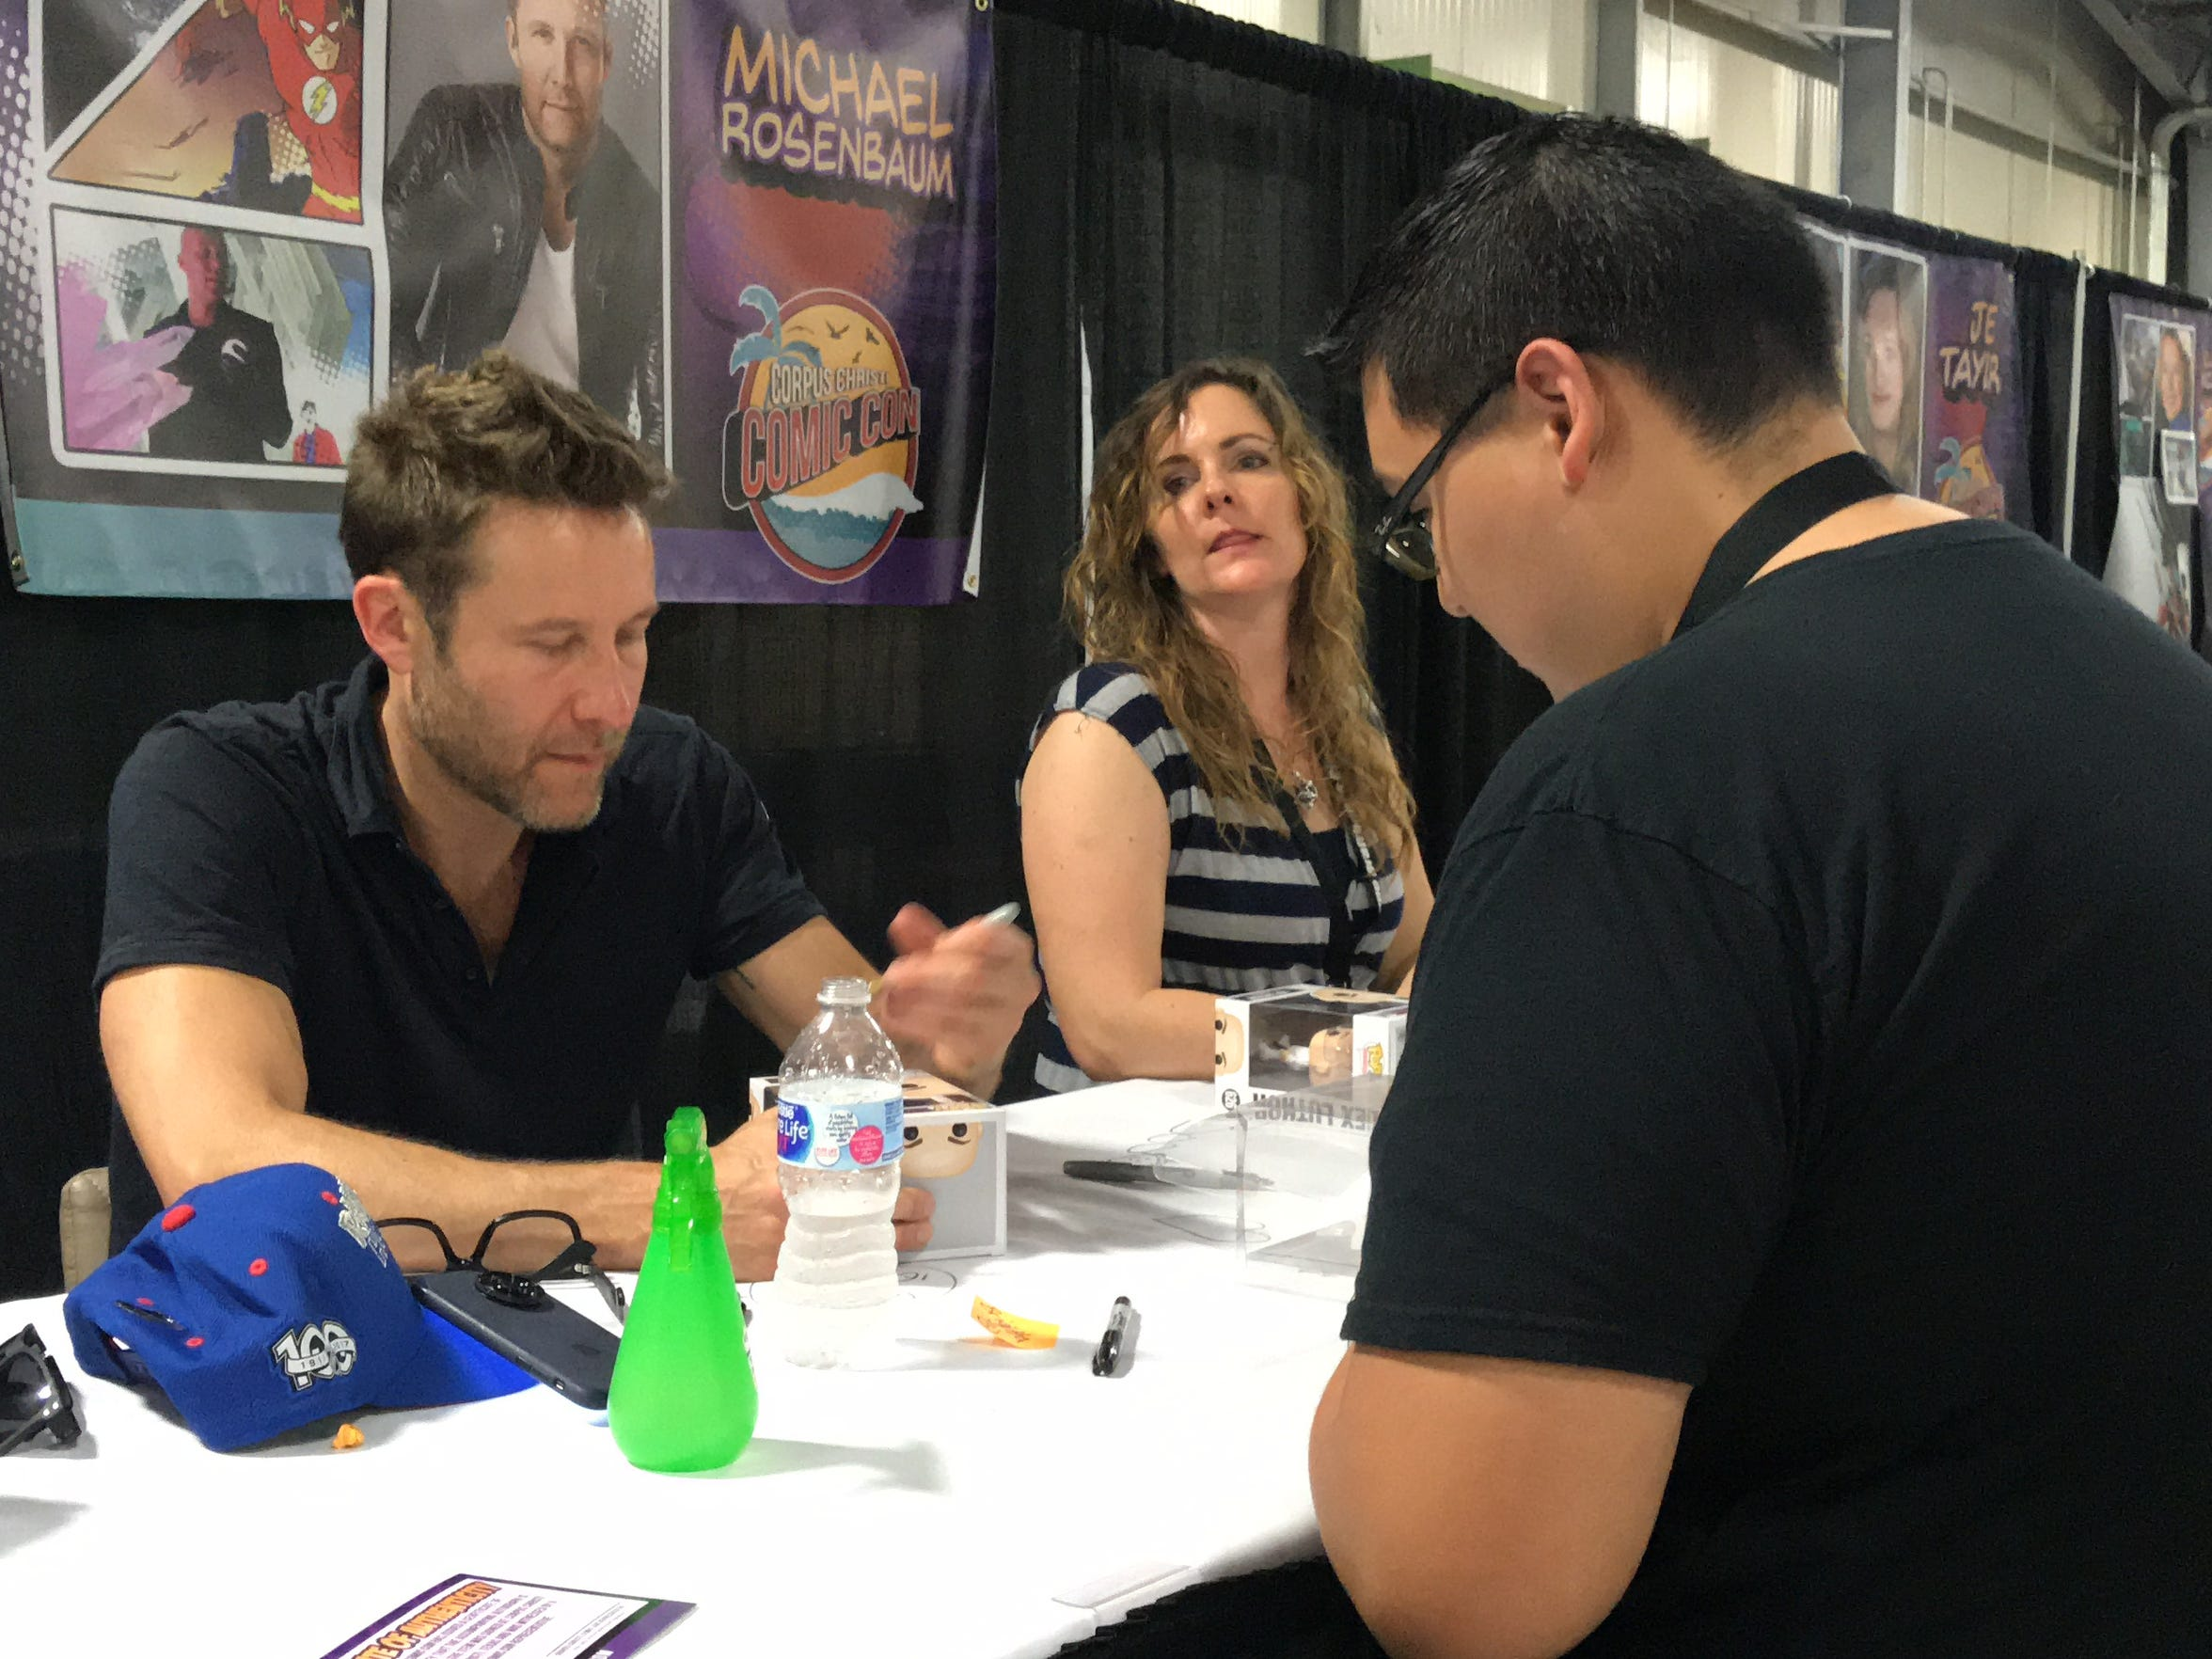 Actor Michael Rosenbaum signs a fan's pop figure at